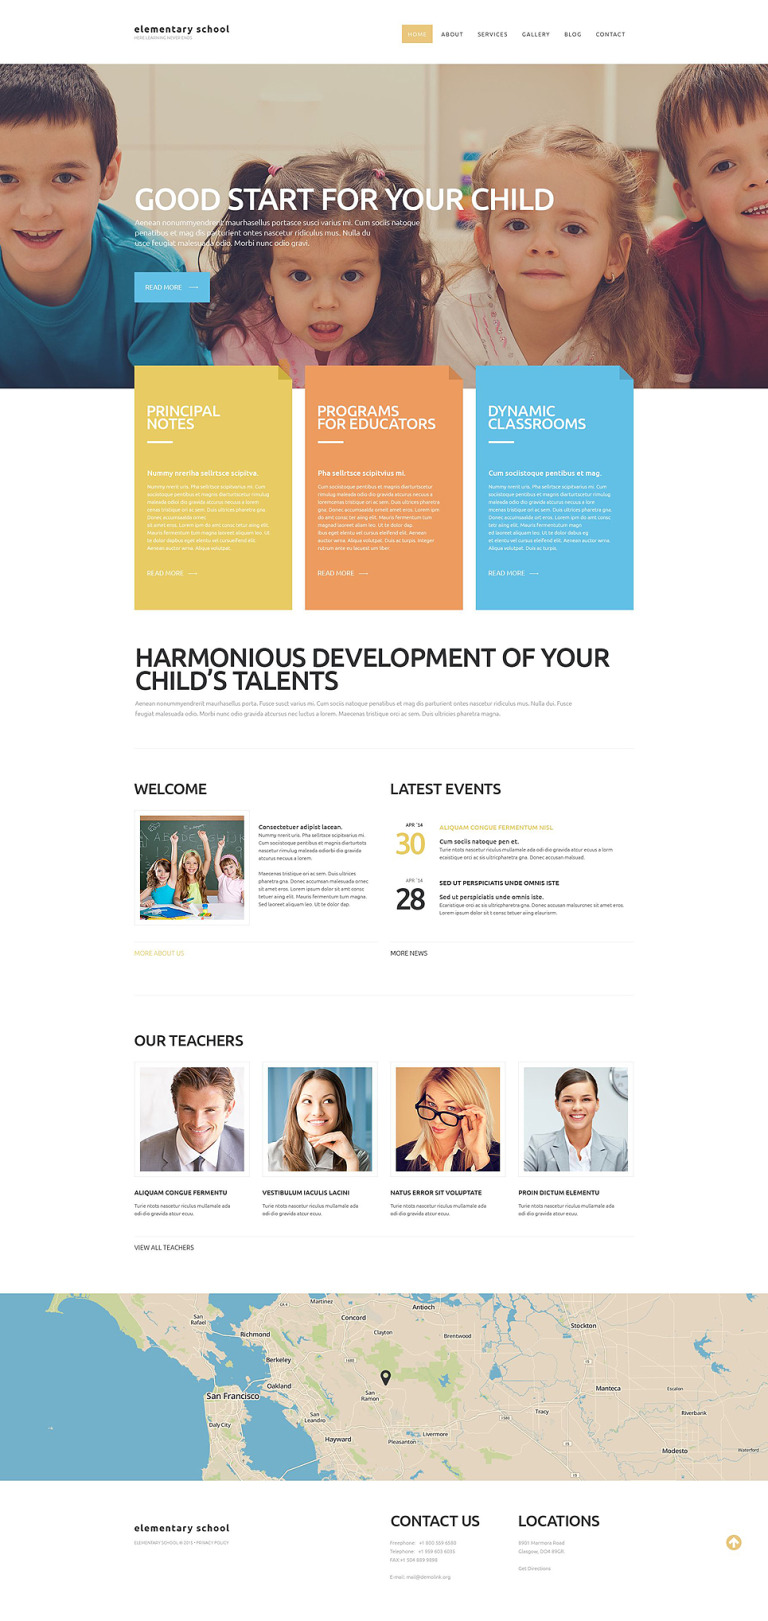 Elementary School Website Template New Screenshots BIG